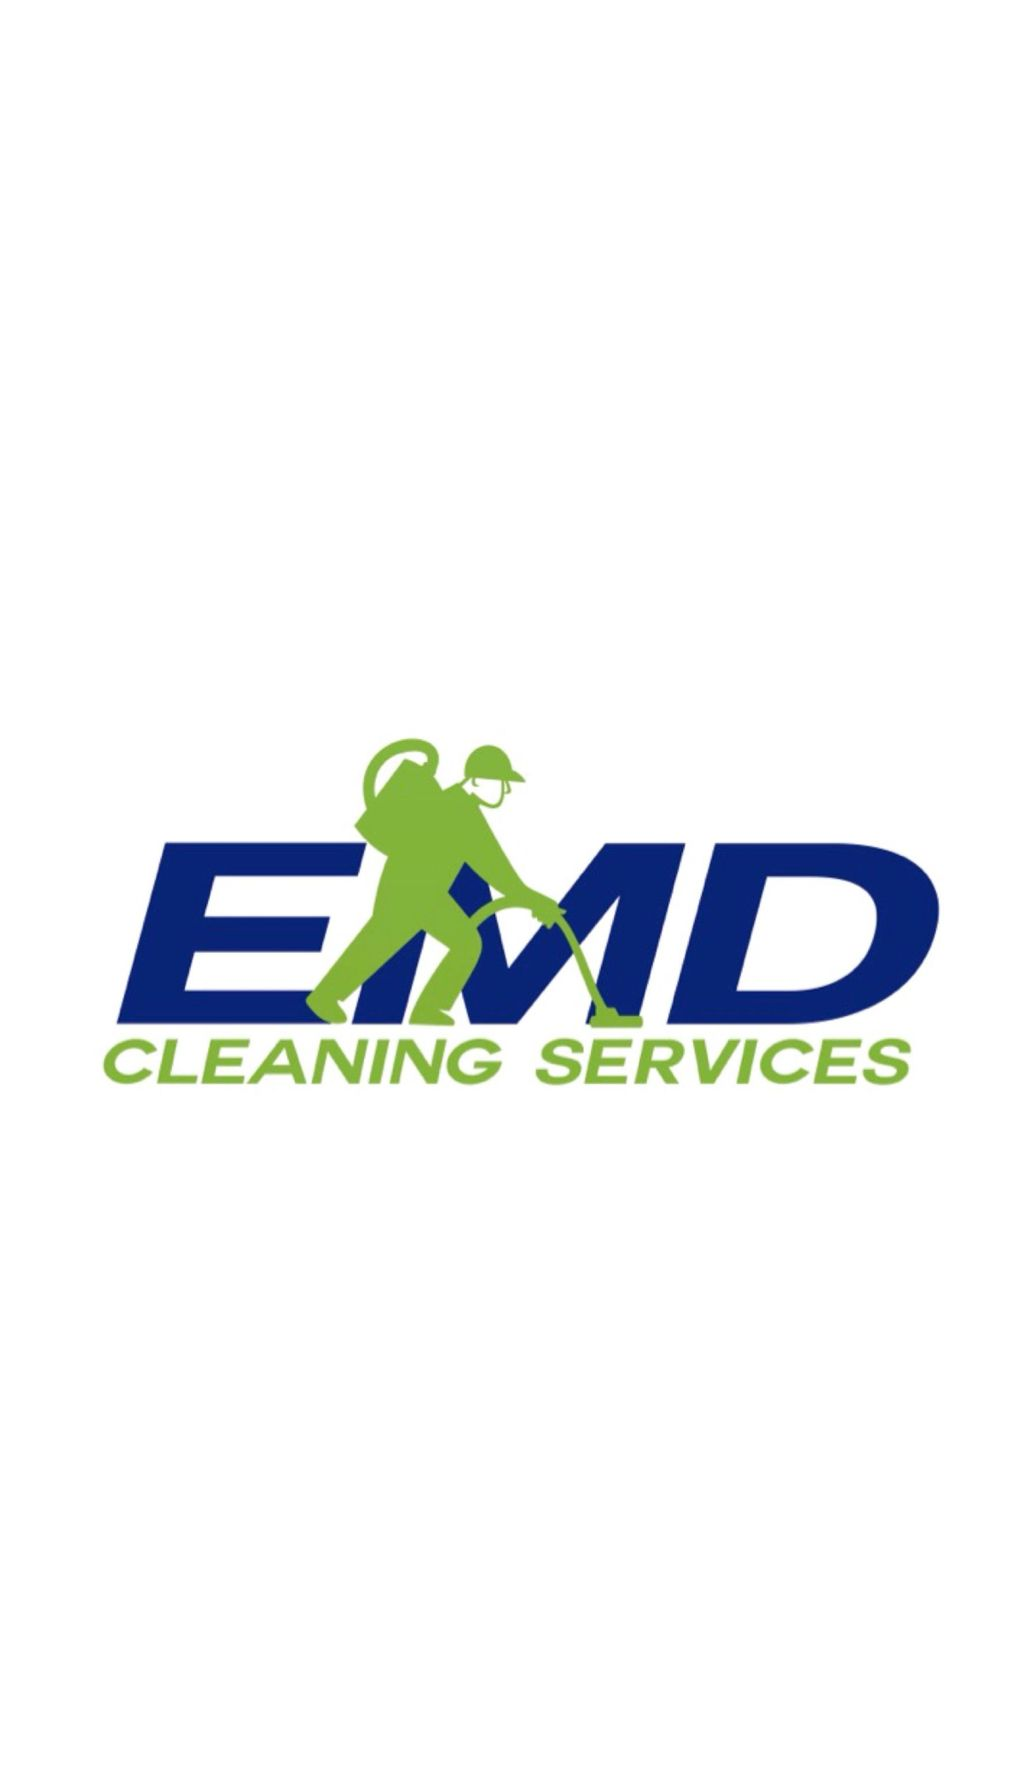 EMD Cleaning Services